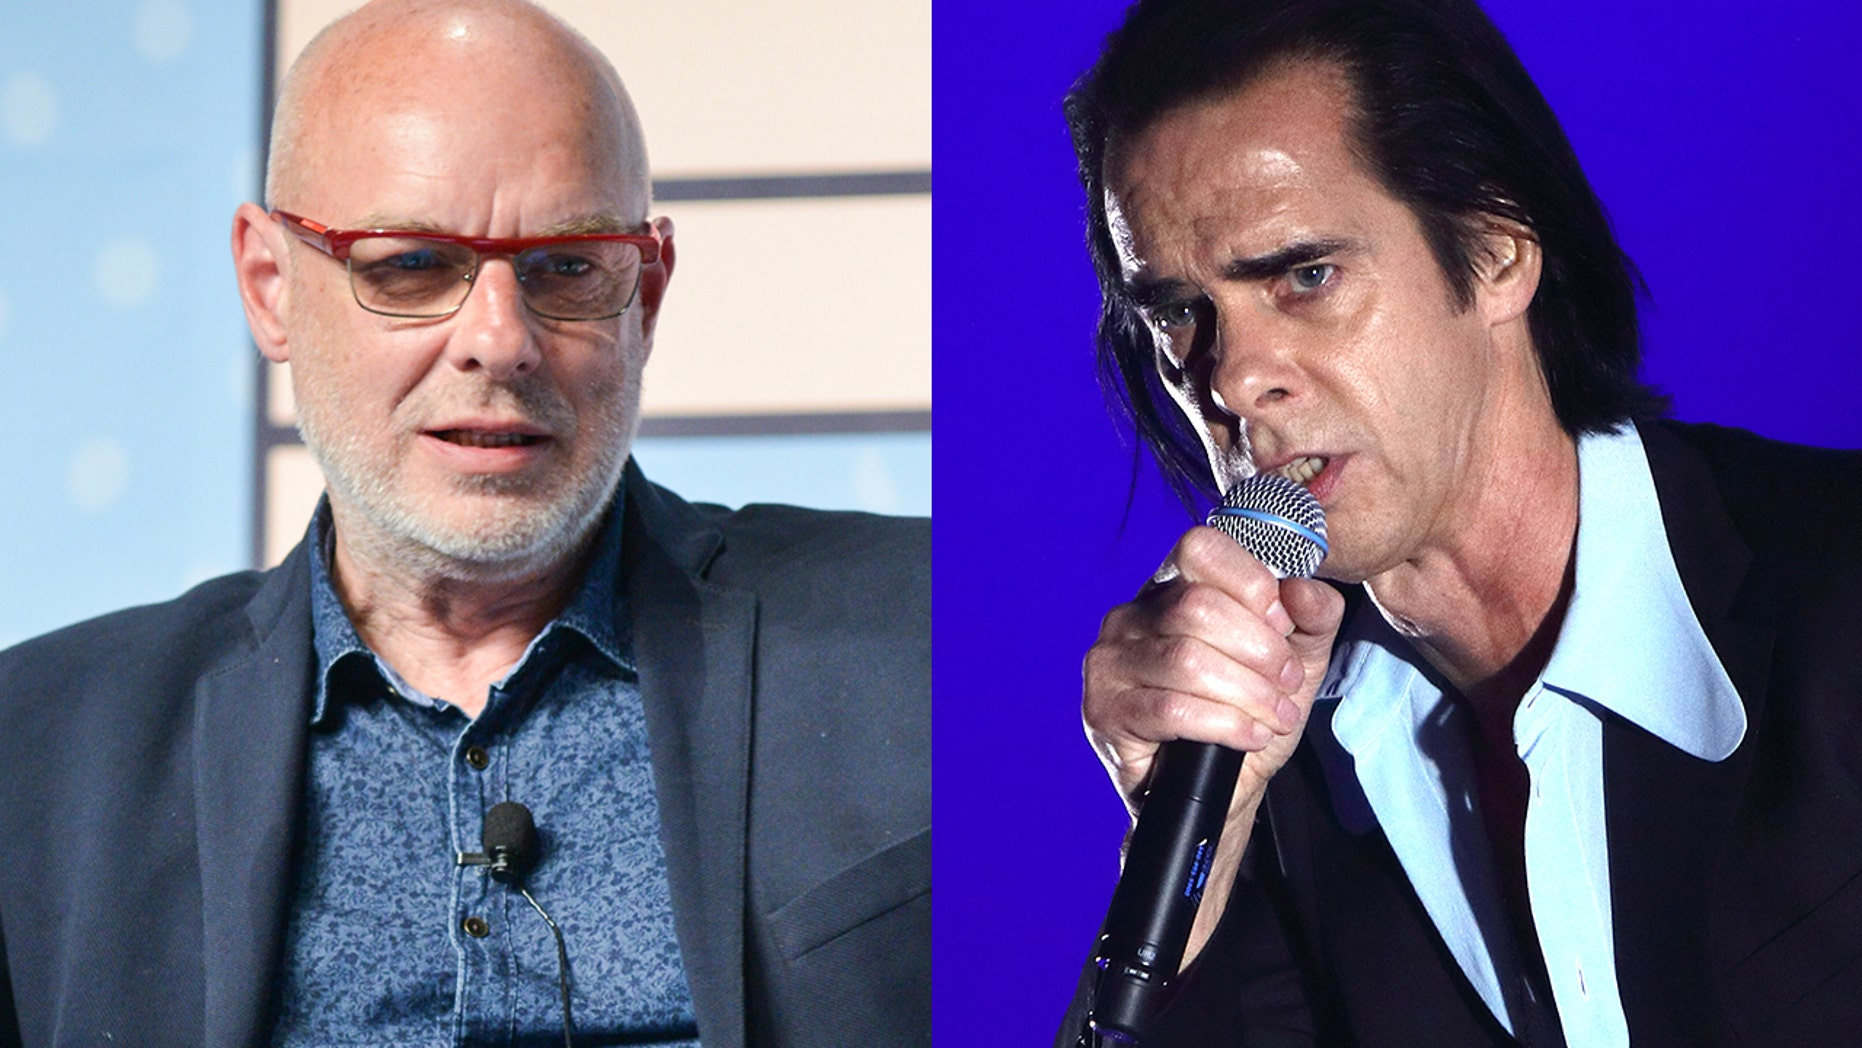 """Nick Cave, right, said Brian Eno's refusal to play in Israel is """"cowardly and shameful."""""""